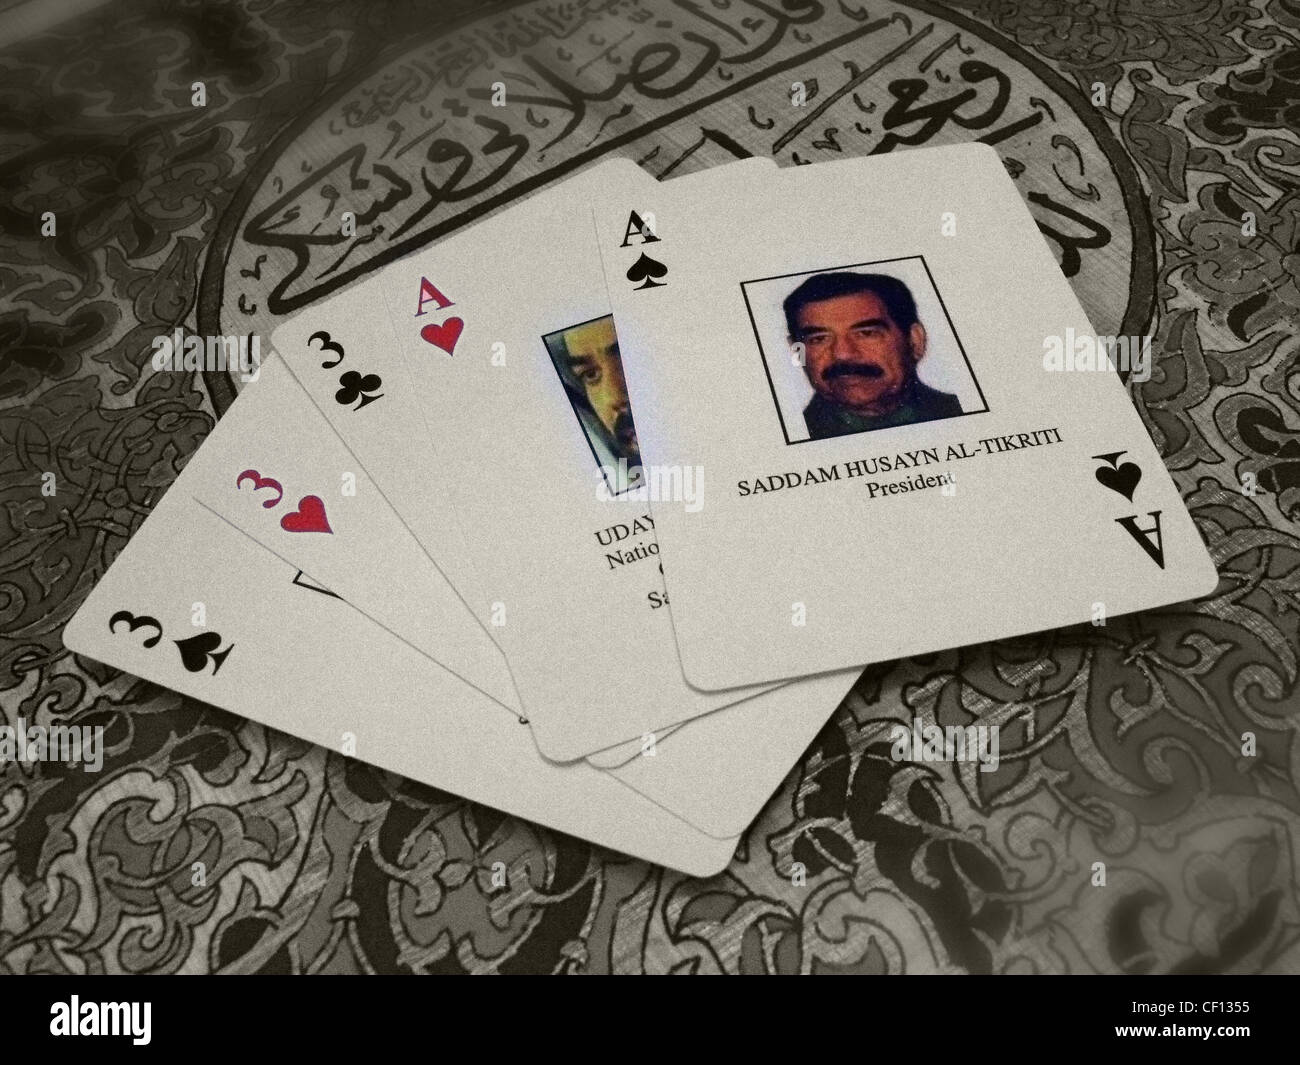 Saddam,Hussein,playing,cards,Ace,gotonysmith,Saddam,Hussein,Abd,al-Majid,al-Tikriti,(Arabic,صدام حسين عبد المجيد التكريتي Ṣadd�m Ḥusayn ʿAbd al-Maǧīd al-Tikrītī,28,April,1937,–,30,December,2006),was the fifth President of Iraq,serving,in,this,capacity,from,16,July,1979,until,9,April,2003,1,2,3,Saddam Hussein Abd al-Majid al-Tikriti (Arabic,صدام حسين عبد المجيد التكريتي Ṣadd�m Ḥusayn ʿAbd al-Maǧīd al-Tikrītī,28,April,1937,–,30,December,2006),was the fifth President of Iraq,serving,in,this,capacity,from,16,July,1979,until,9,April,2003.,A leading member of the revolutionary Arab Socialist Baath Party,and later,the,Baghdad-based,Baath,Party,and,its,regional,organisation,Baath,Party,–,Iraq,Region,which espoused baathism,a mix of Arab nationalism and Arab socialism,Saddam played a key role in the 1968 coup,later referred to as the 17 July Revolution,that,brought,the,party,to,long-term,power,of,Iraq.,As,vice,president,under,the,ailing,General,Ahmed,Hassan,al-Bakr,playing cards government,Saddam created security forces ace of spades,gotonysmith,1,2,3,4,5,Buy Pictures of,Buy Images Of